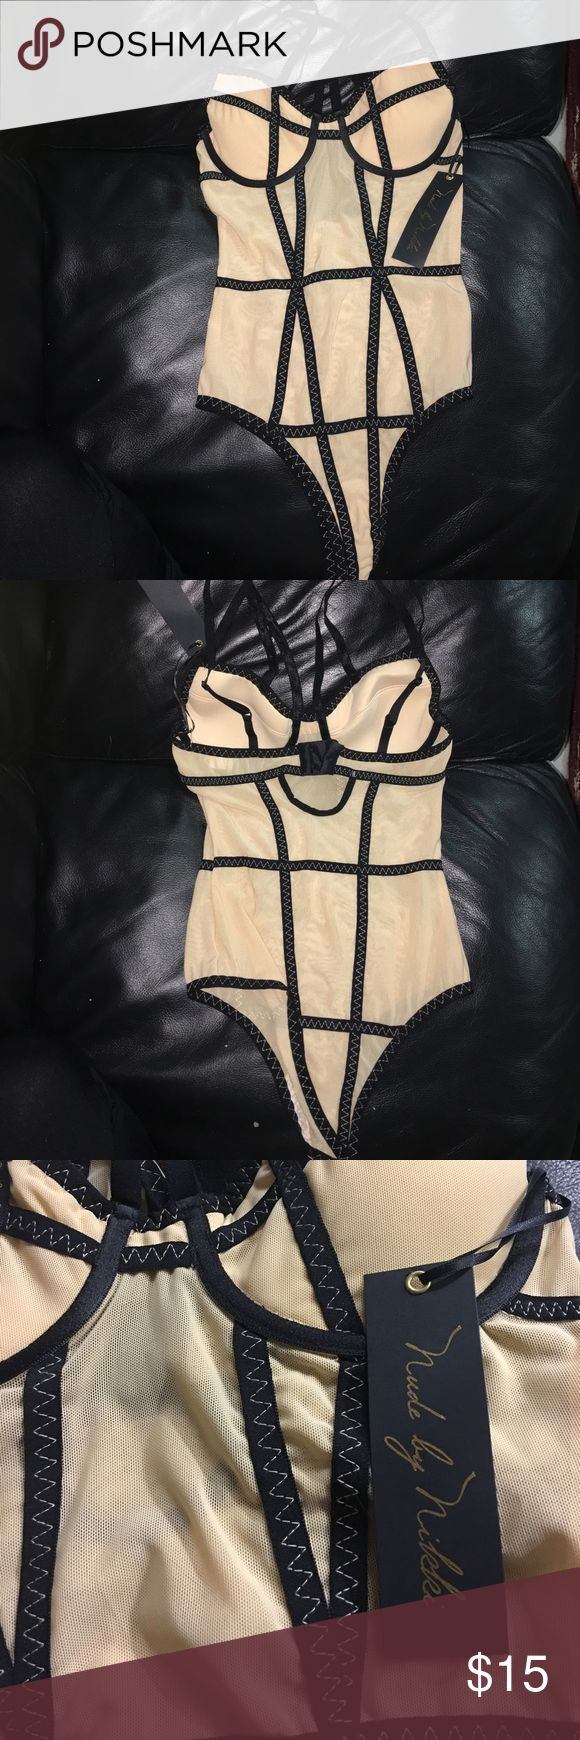 NWT Nude By Nikki Bodysuit Nude strappy bodysuit with mesh and black criss cross trim Nude By Nikki  Tops